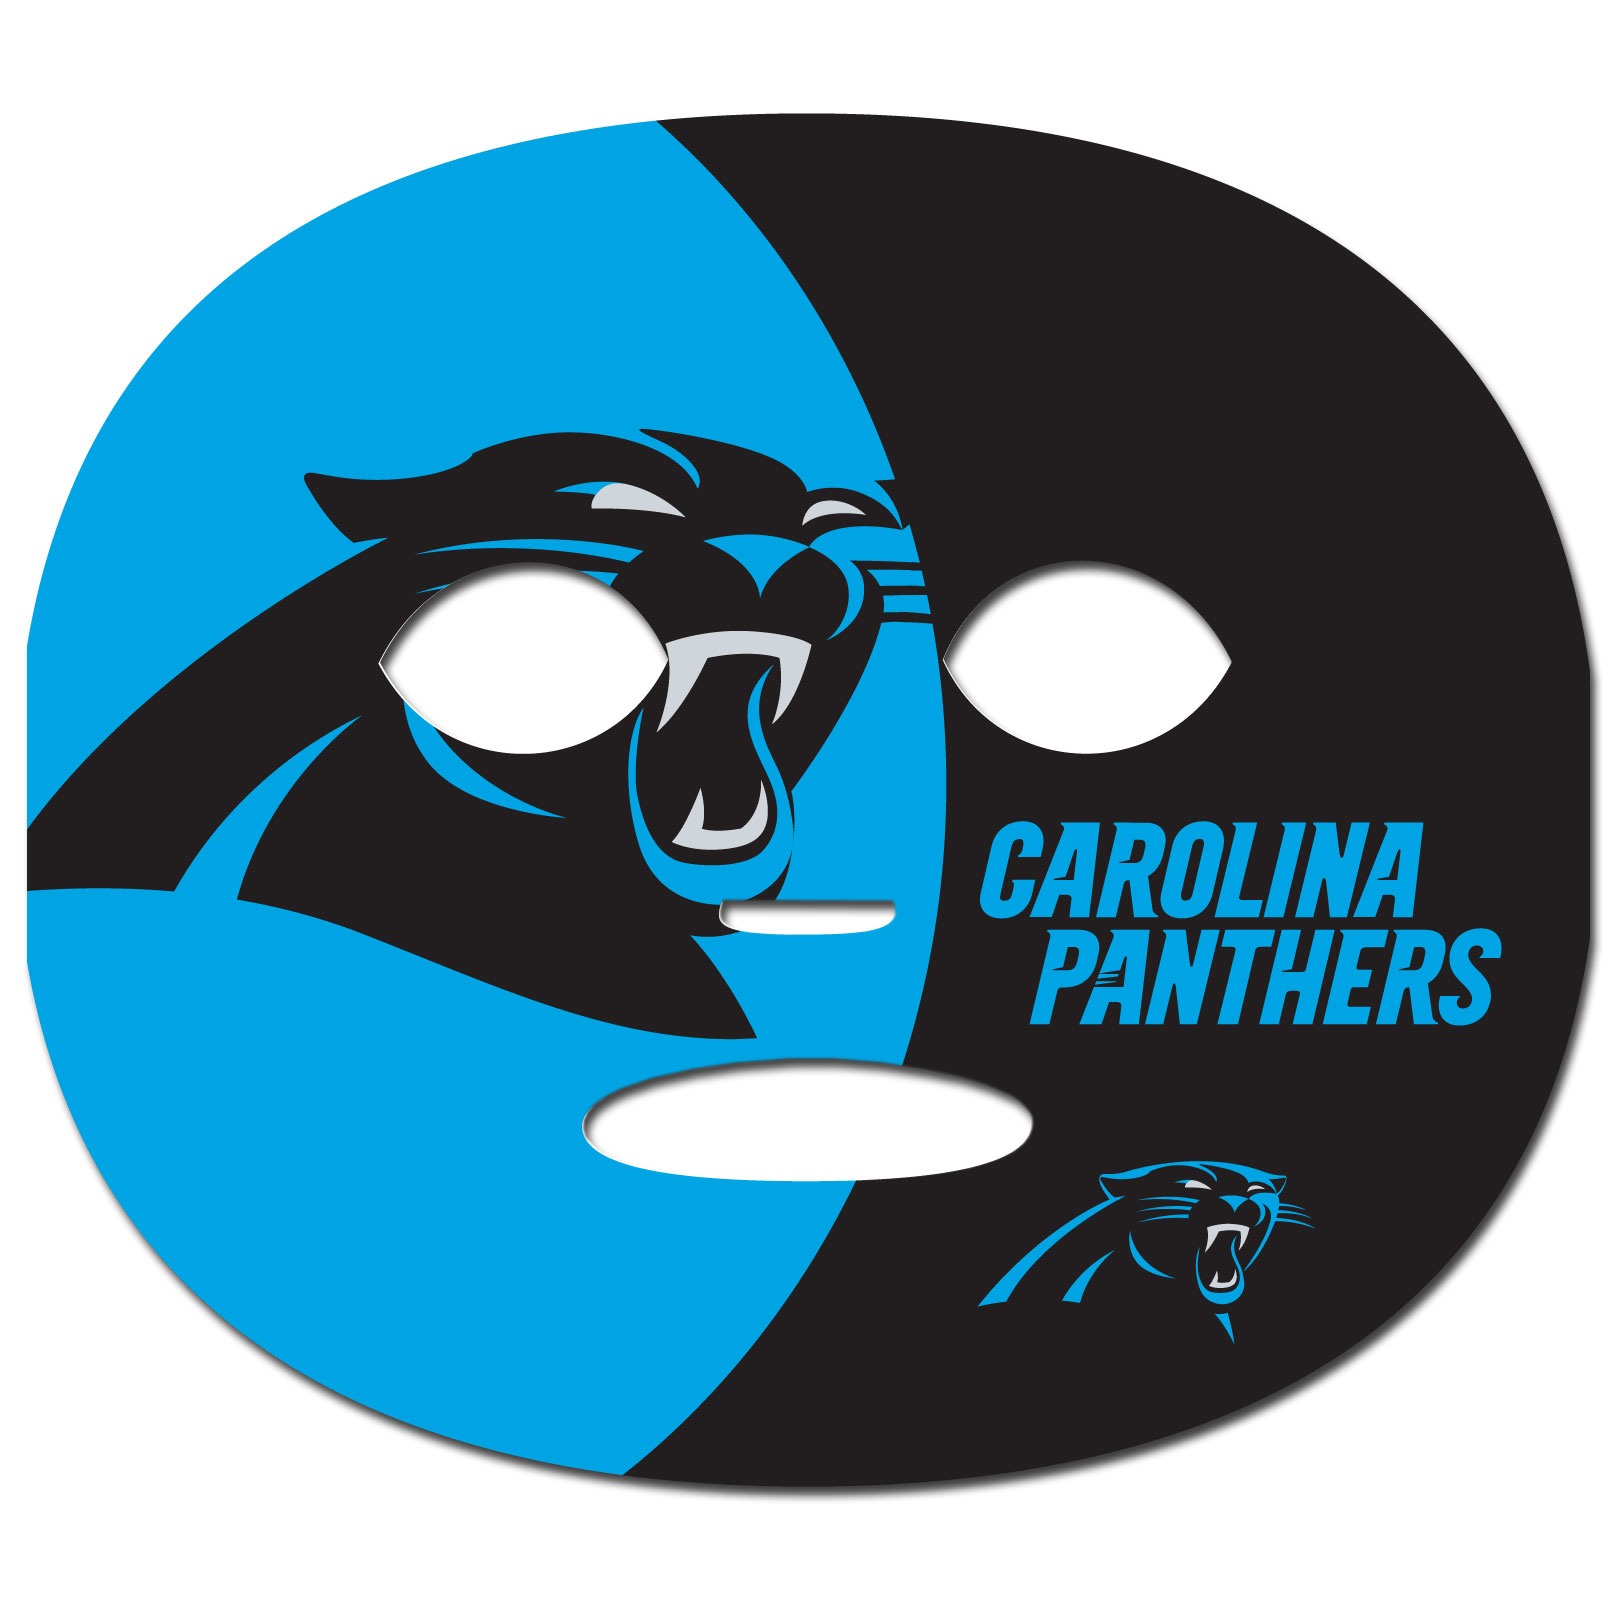 Nfl gameday face temporary tattoo choose your team ebay for Carolina panthers tattoos